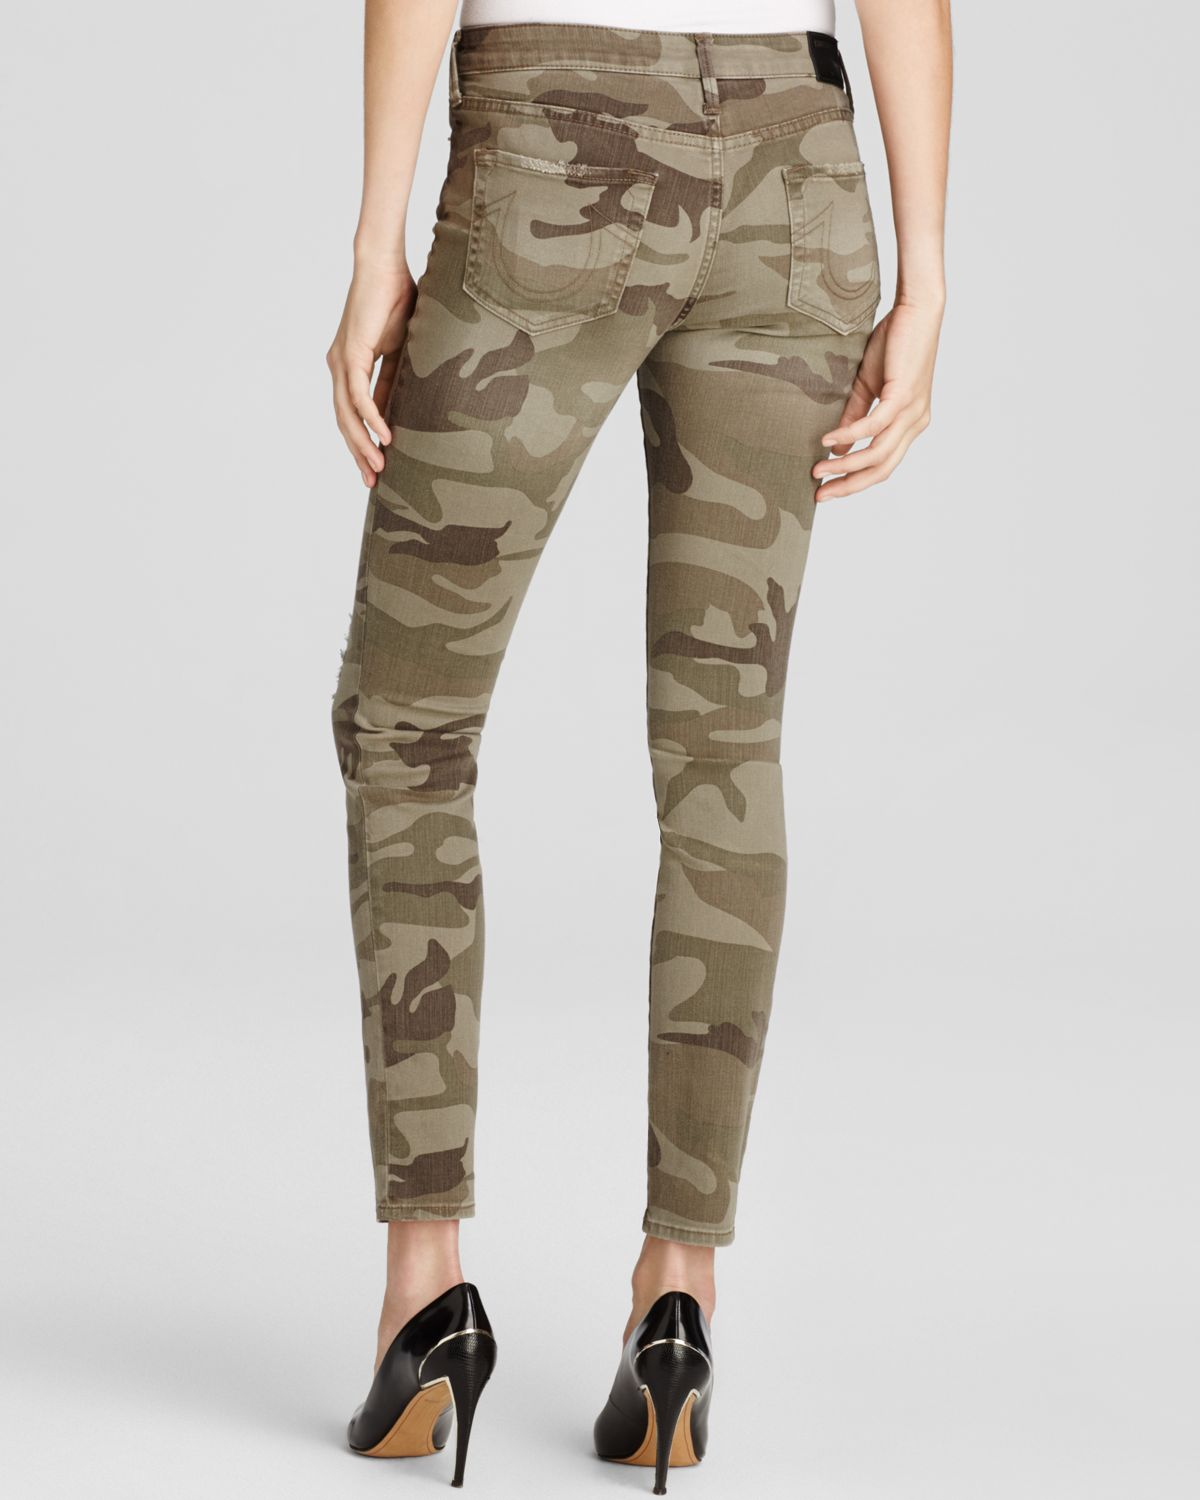 G.I.L.I. Camo Skinny Jeans is rated out of 5 by Rated 3 out of 5 by Pink Posh from Not A Good Fit! I wear a size 2 & unfortunately these pants were too short for my legs and too tight in the calf/leg area so I had to return them for credit/5.